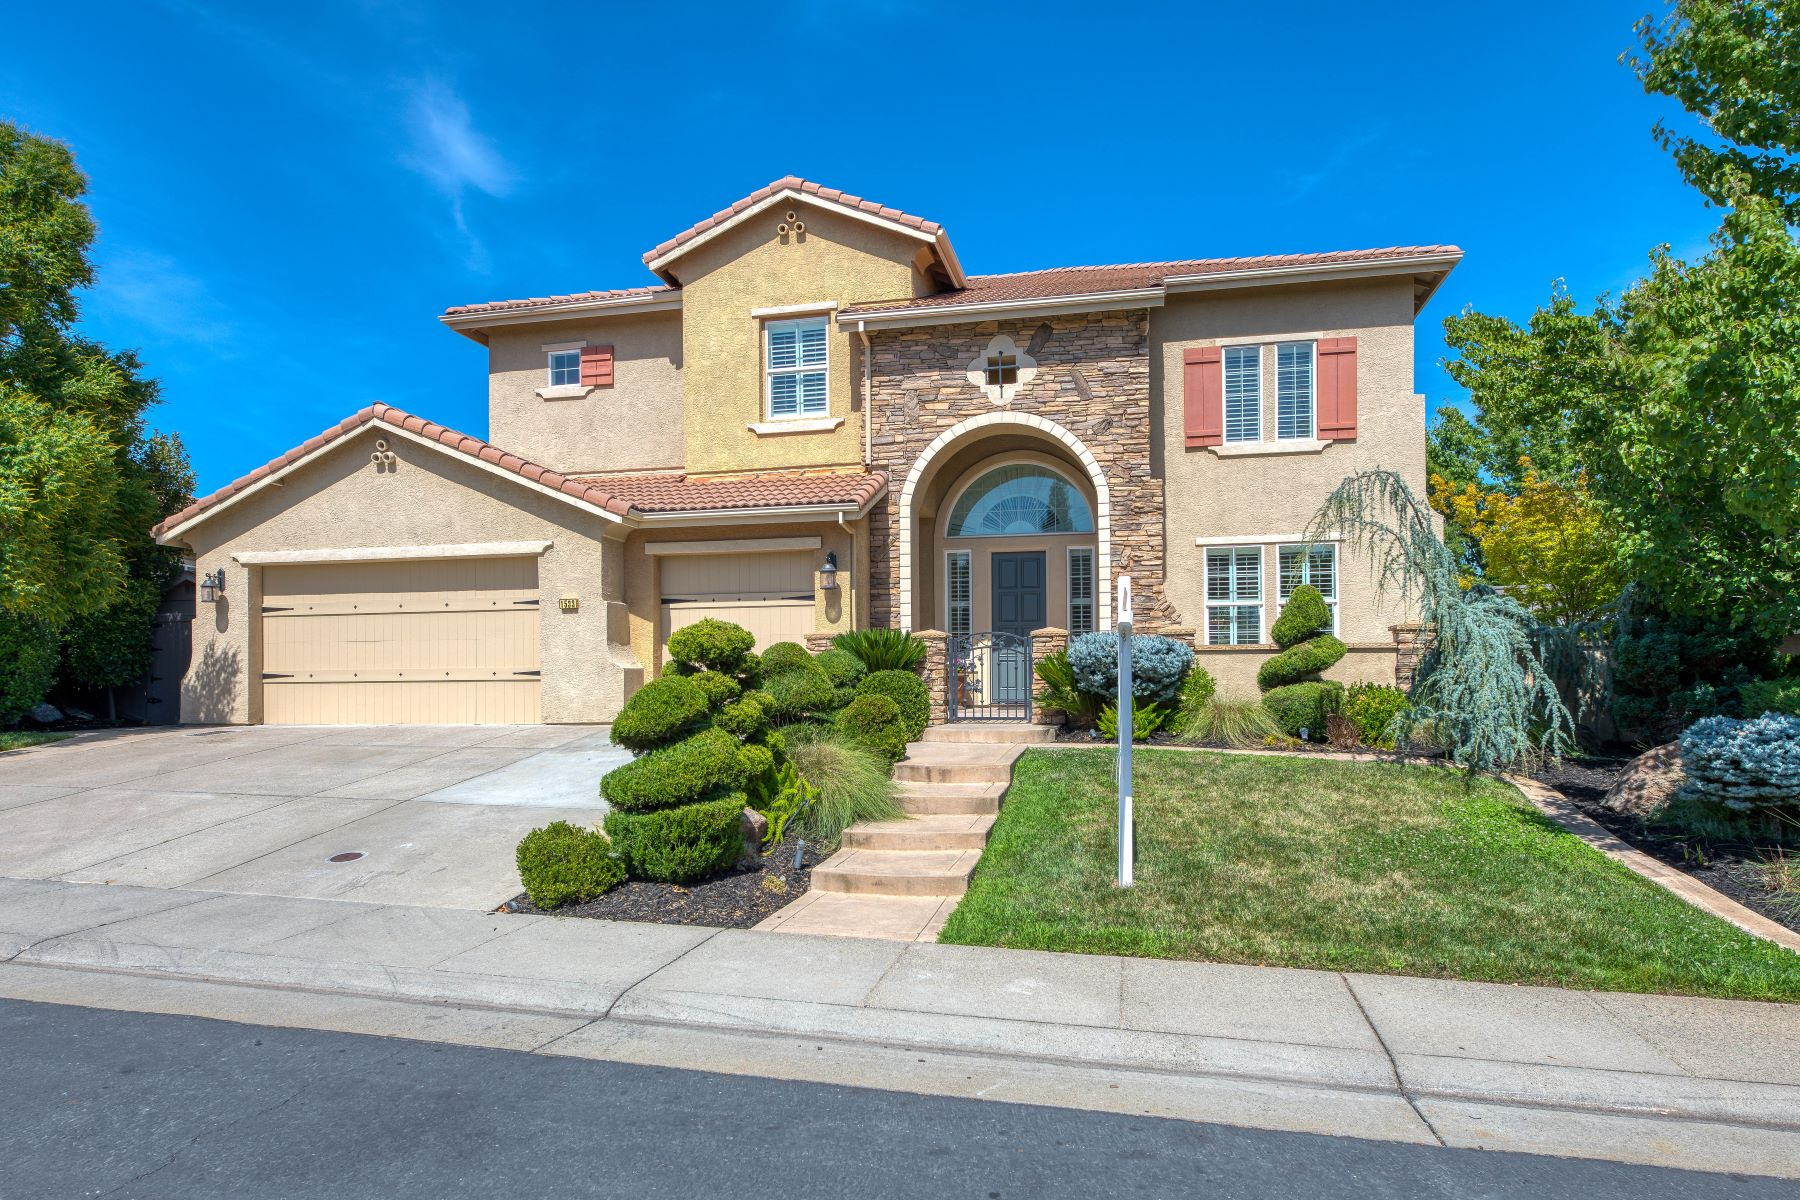 Single Family Homes for Sale at 1533 Woodgrove Way, Roseville, CA 95661 1533 Woodgrove Way Roseville, California 95661 United States